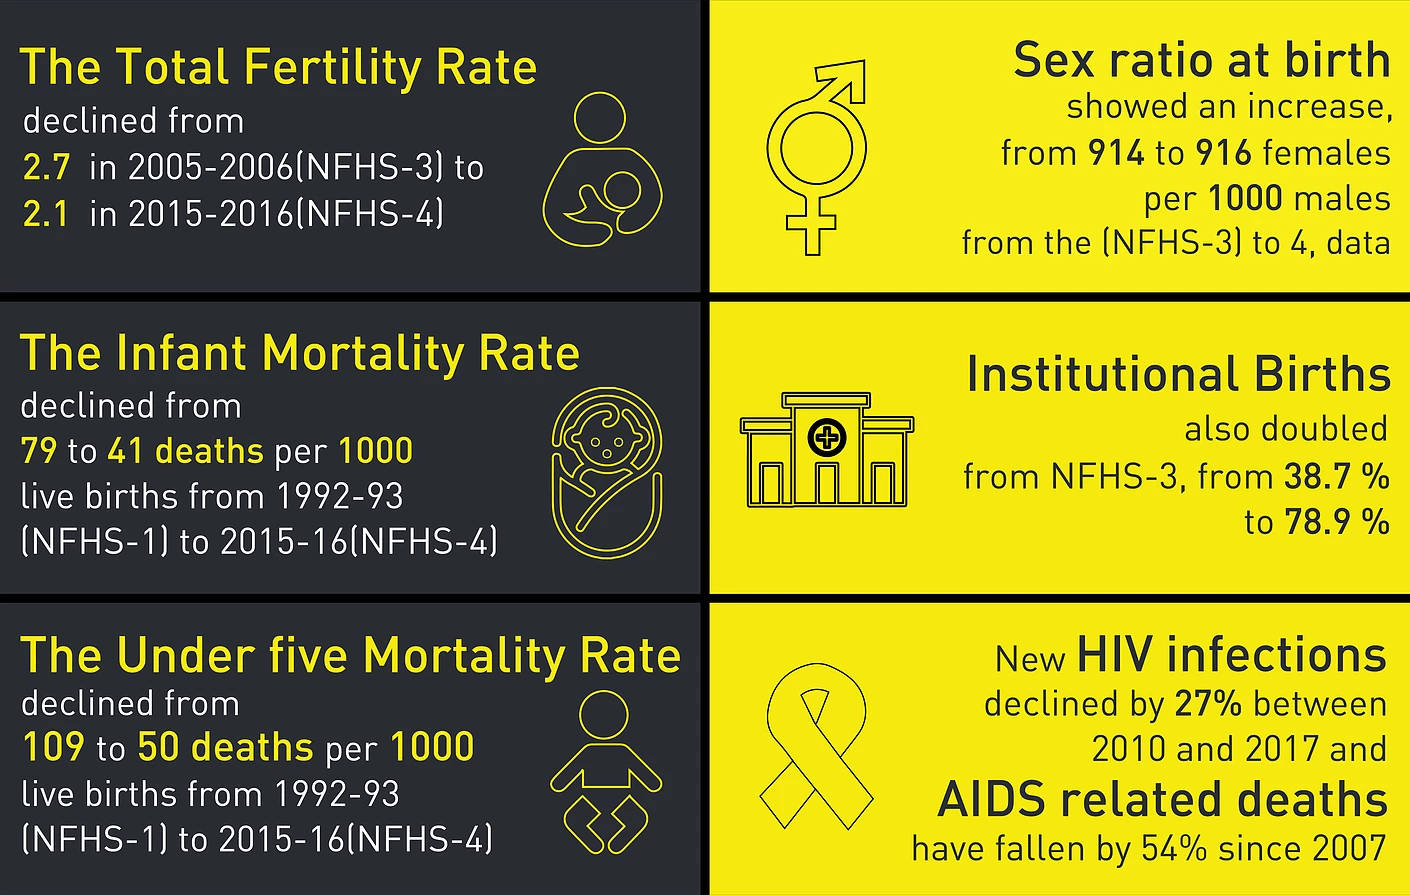 India Sexual Health Fertility Rate Infant Mortality Rate